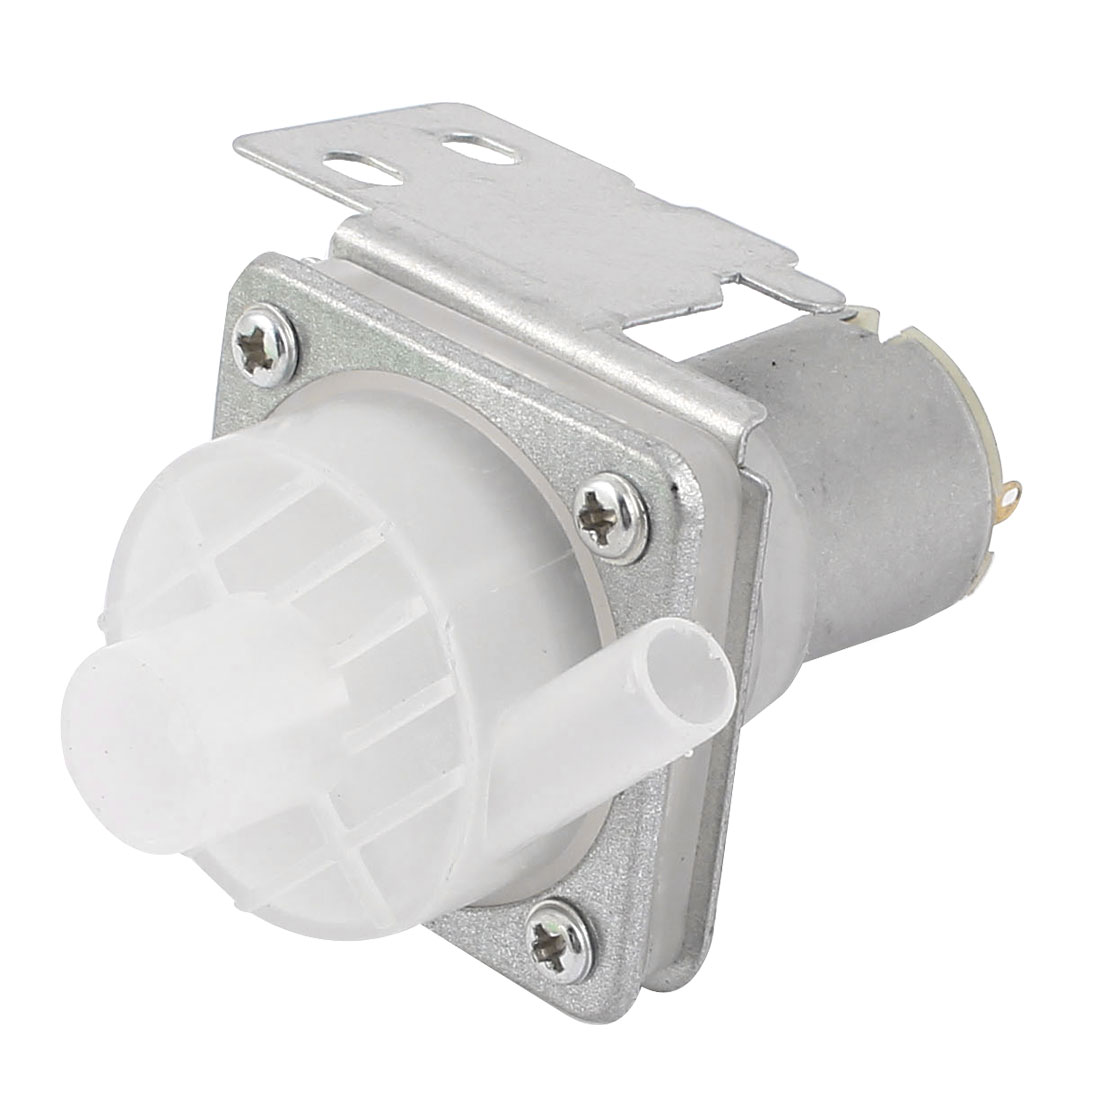 AC 220V Right Outlet Micropump Pump Motor for Water Dispenser